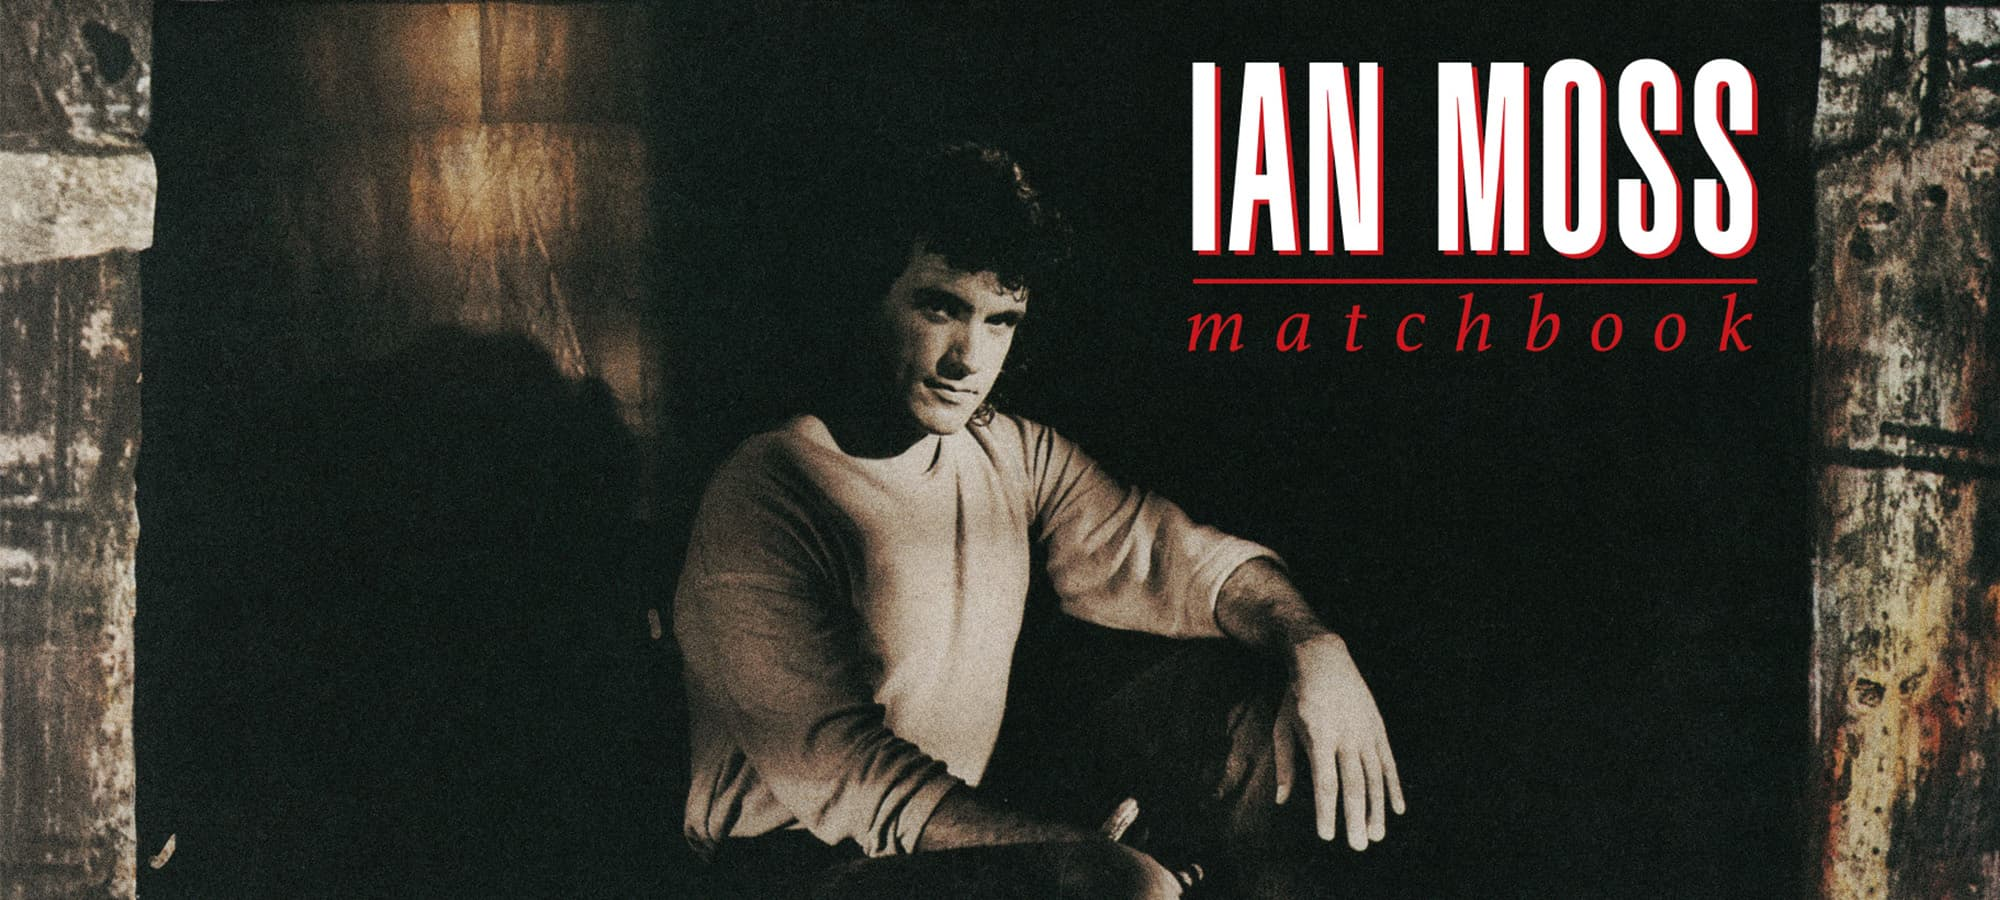 A Moment with Ian Moss